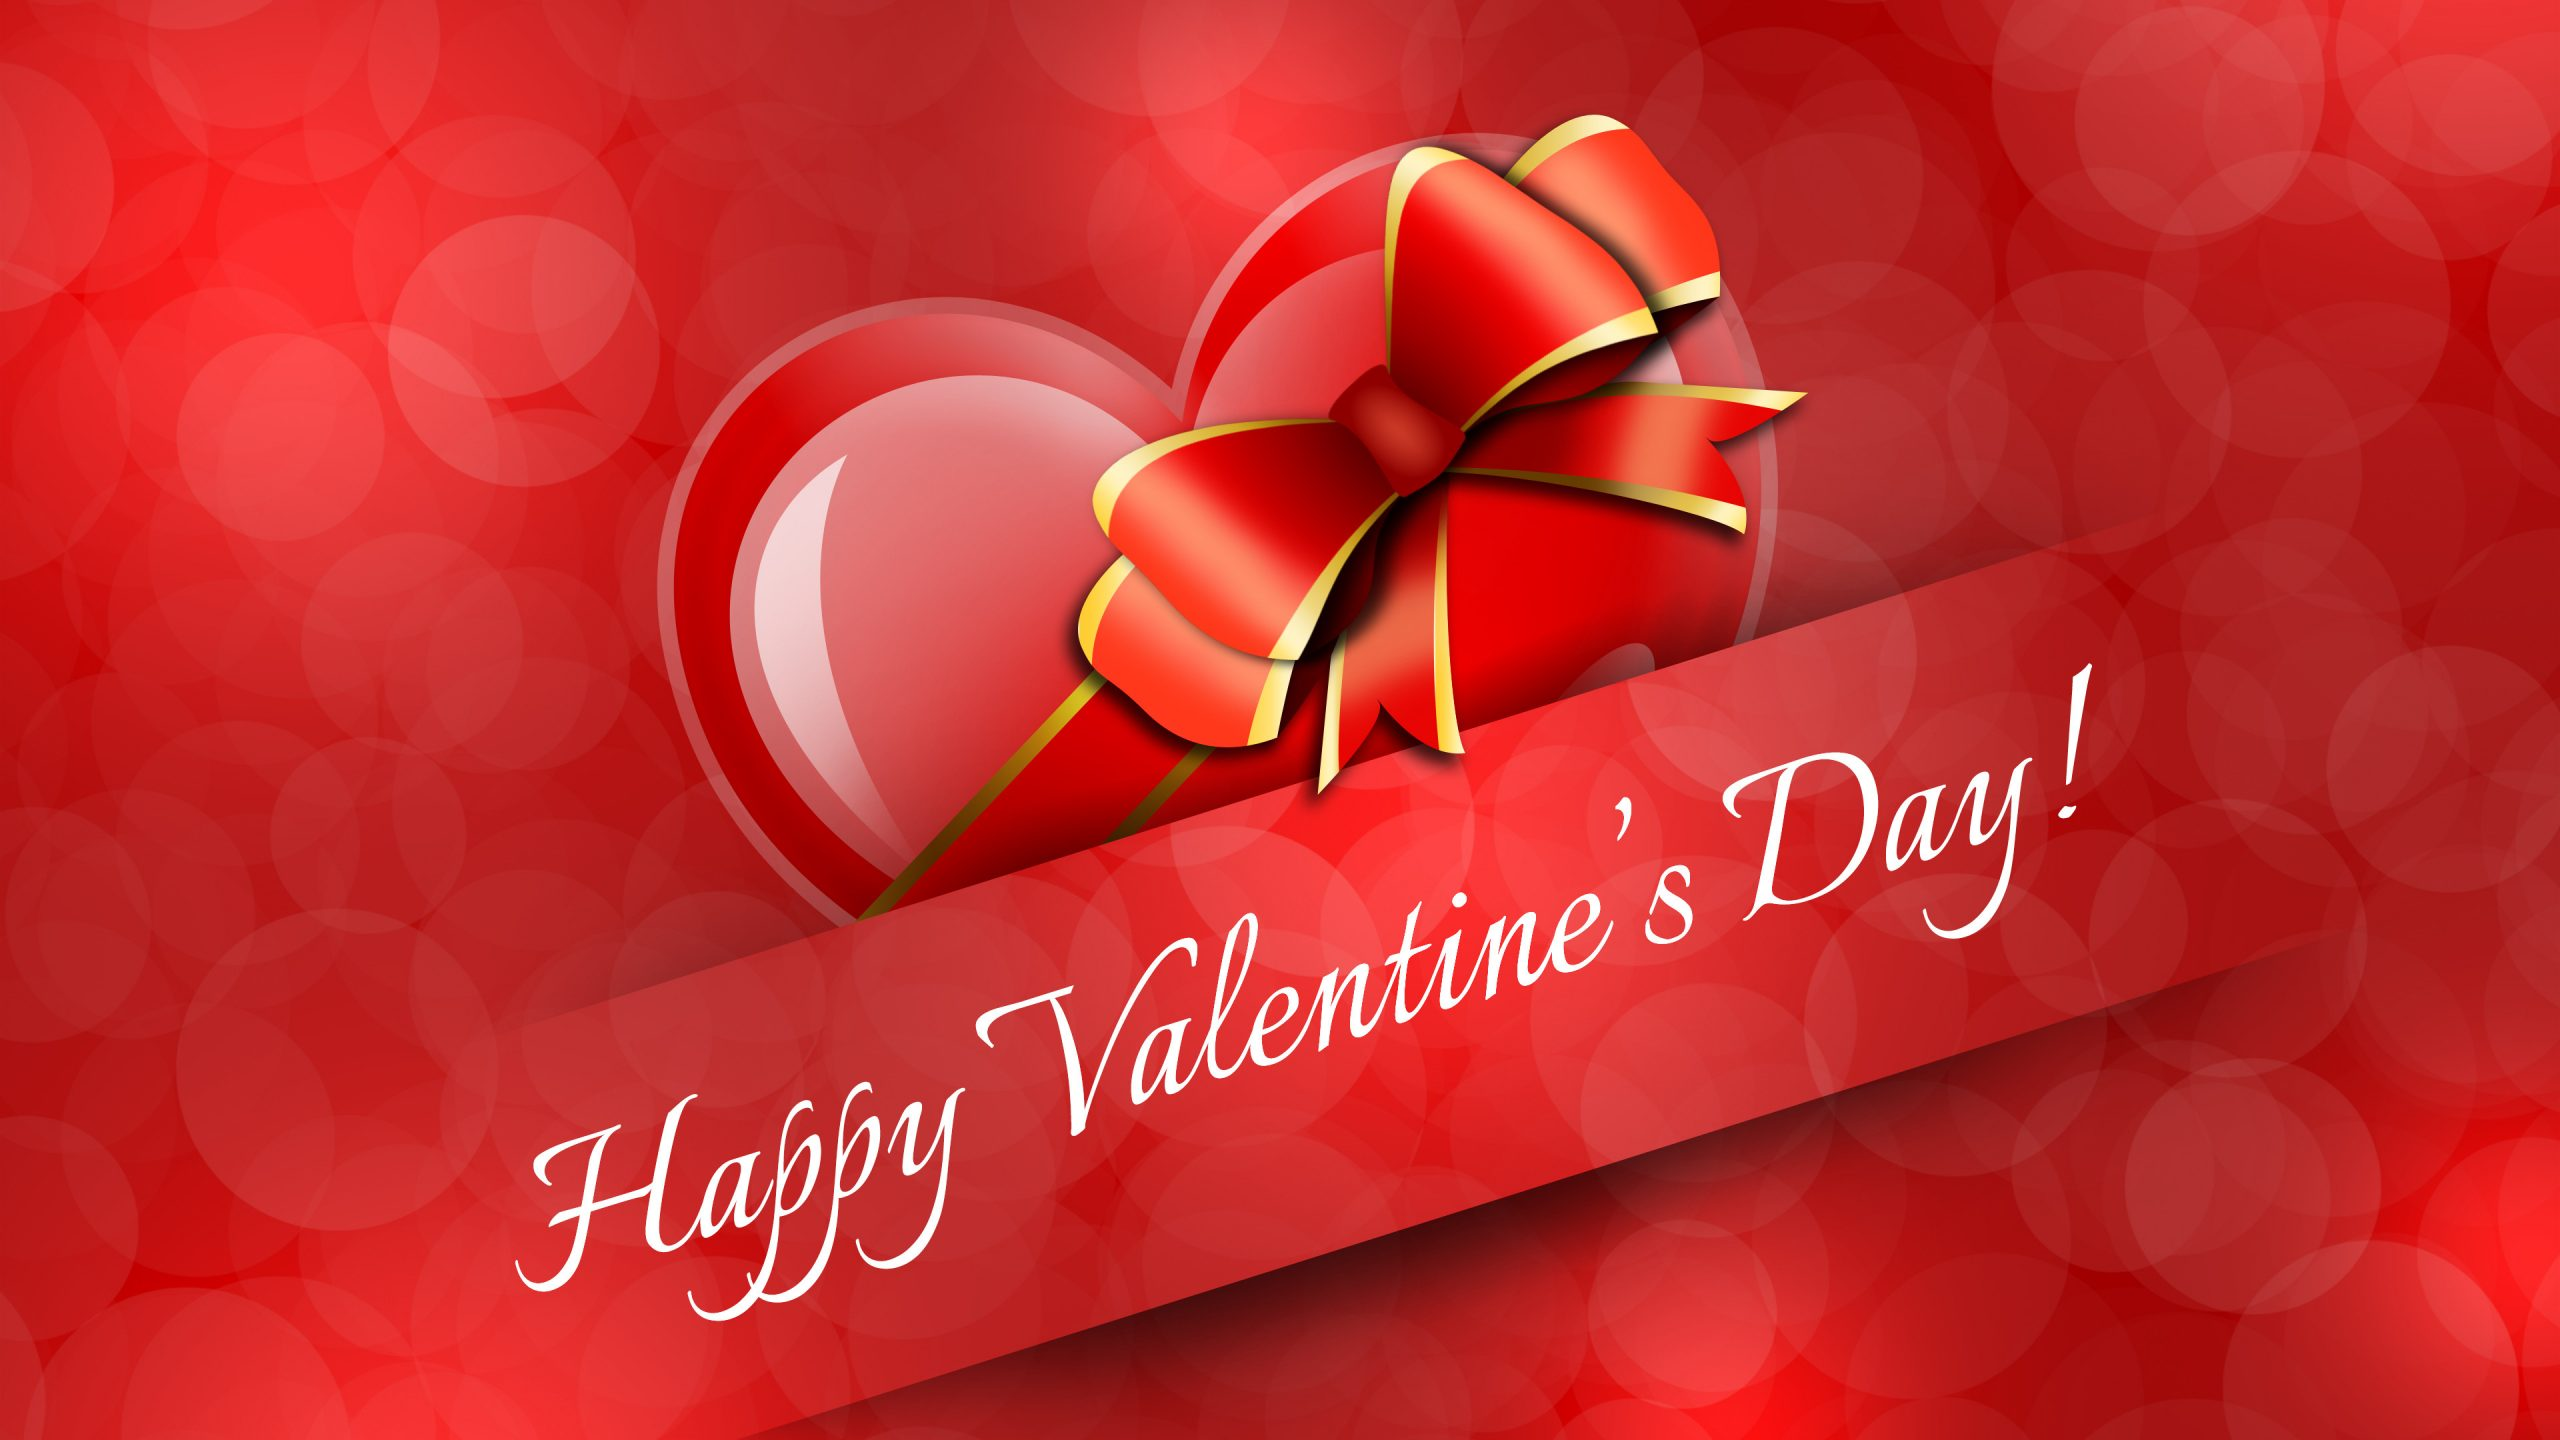 Valentine's Day 2021 Images